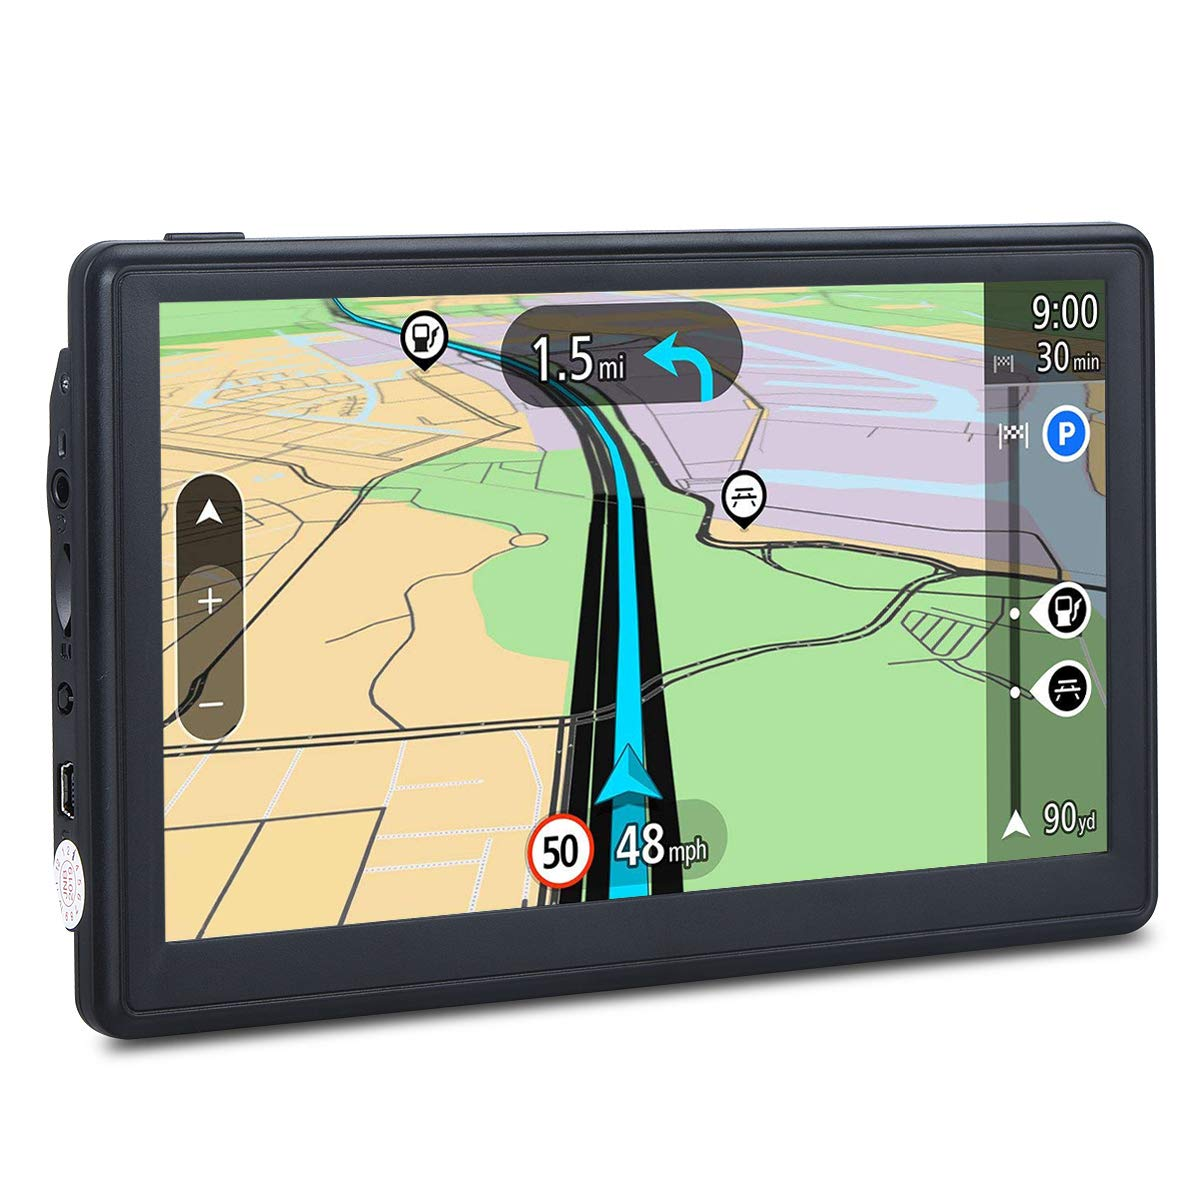 7-inch Navigation System for Cars, Car GPS Spoken Turn- to-Turn Vehicle GPS, Lifetime Map Updates by FULiYEAR